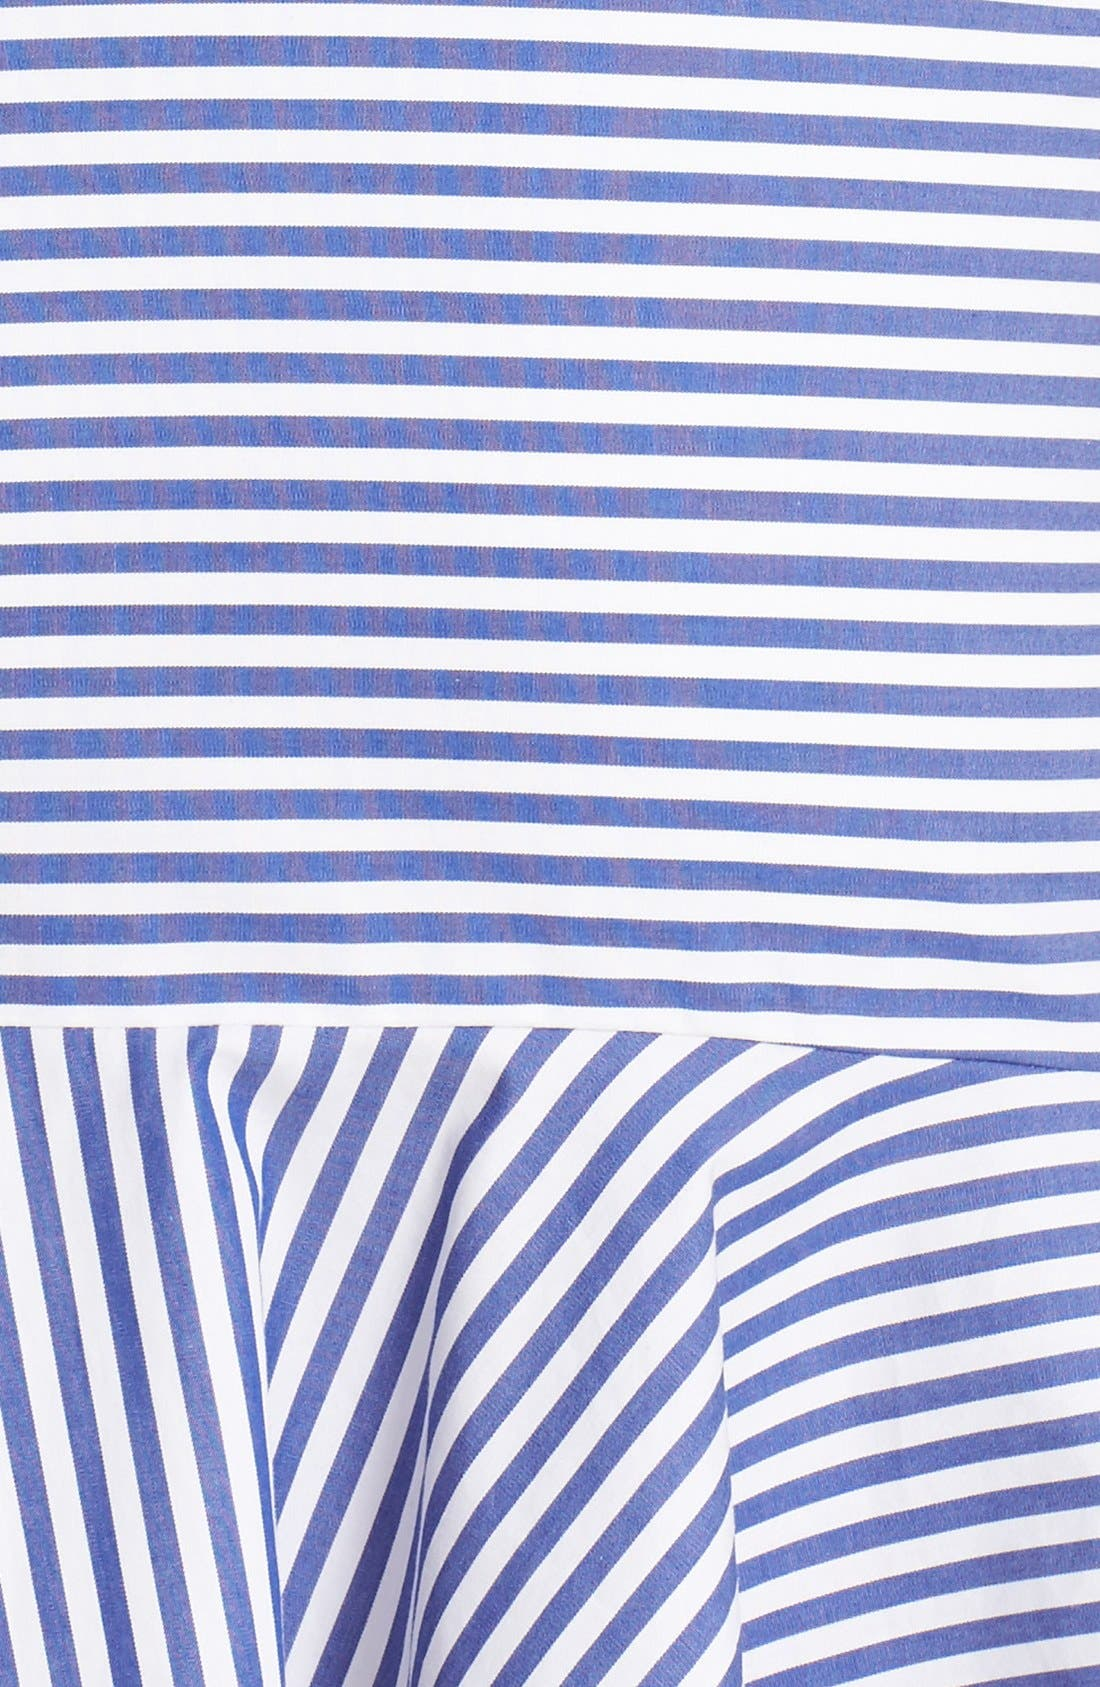 Bell Stripe Ruched Shirtdress,                             Alternate thumbnail 5, color,                             Blue/ White